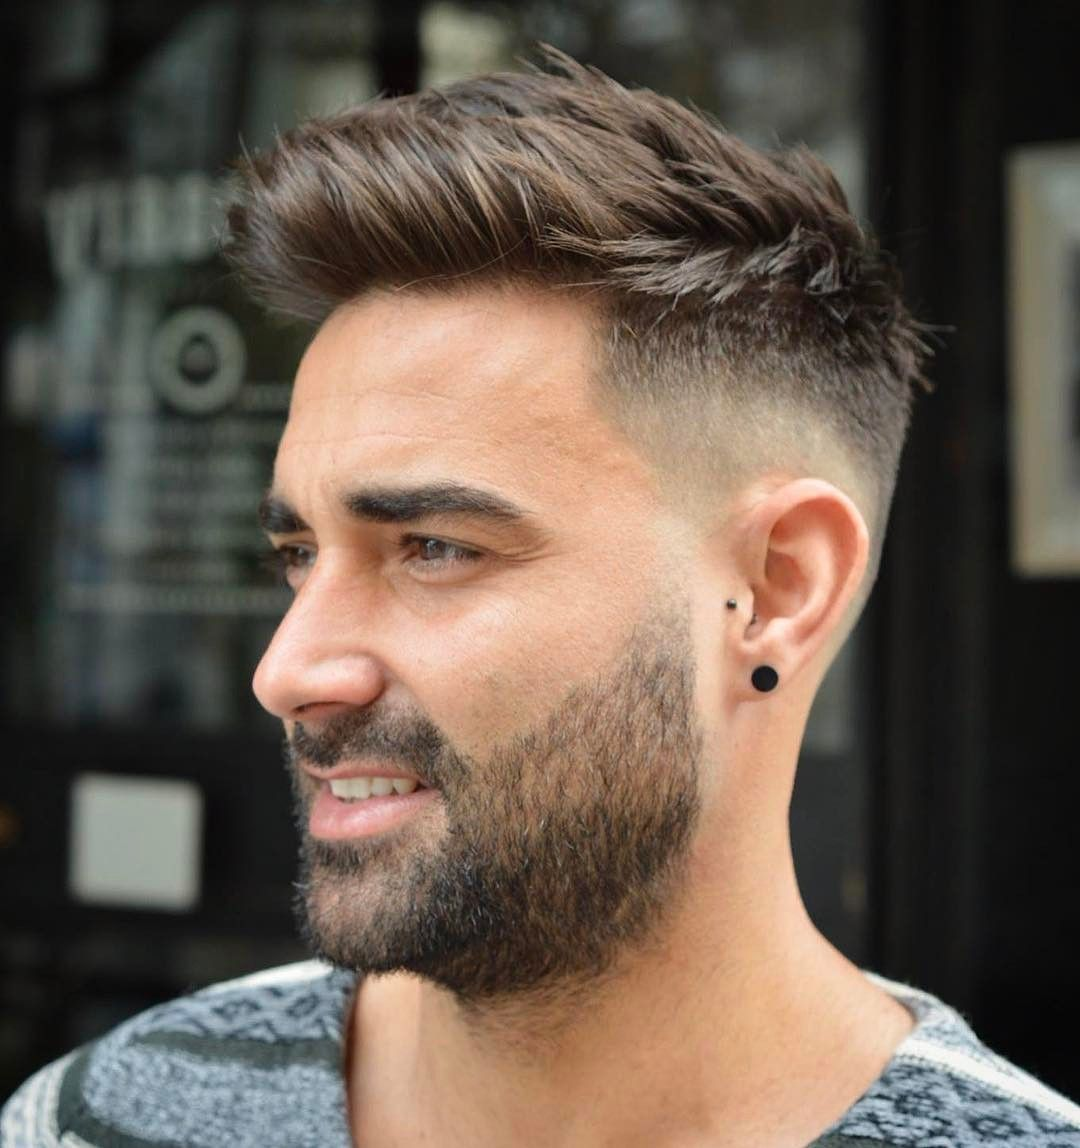 Haircut for thin hair men cool  sexy hairstyles for men  be trendy in   hair